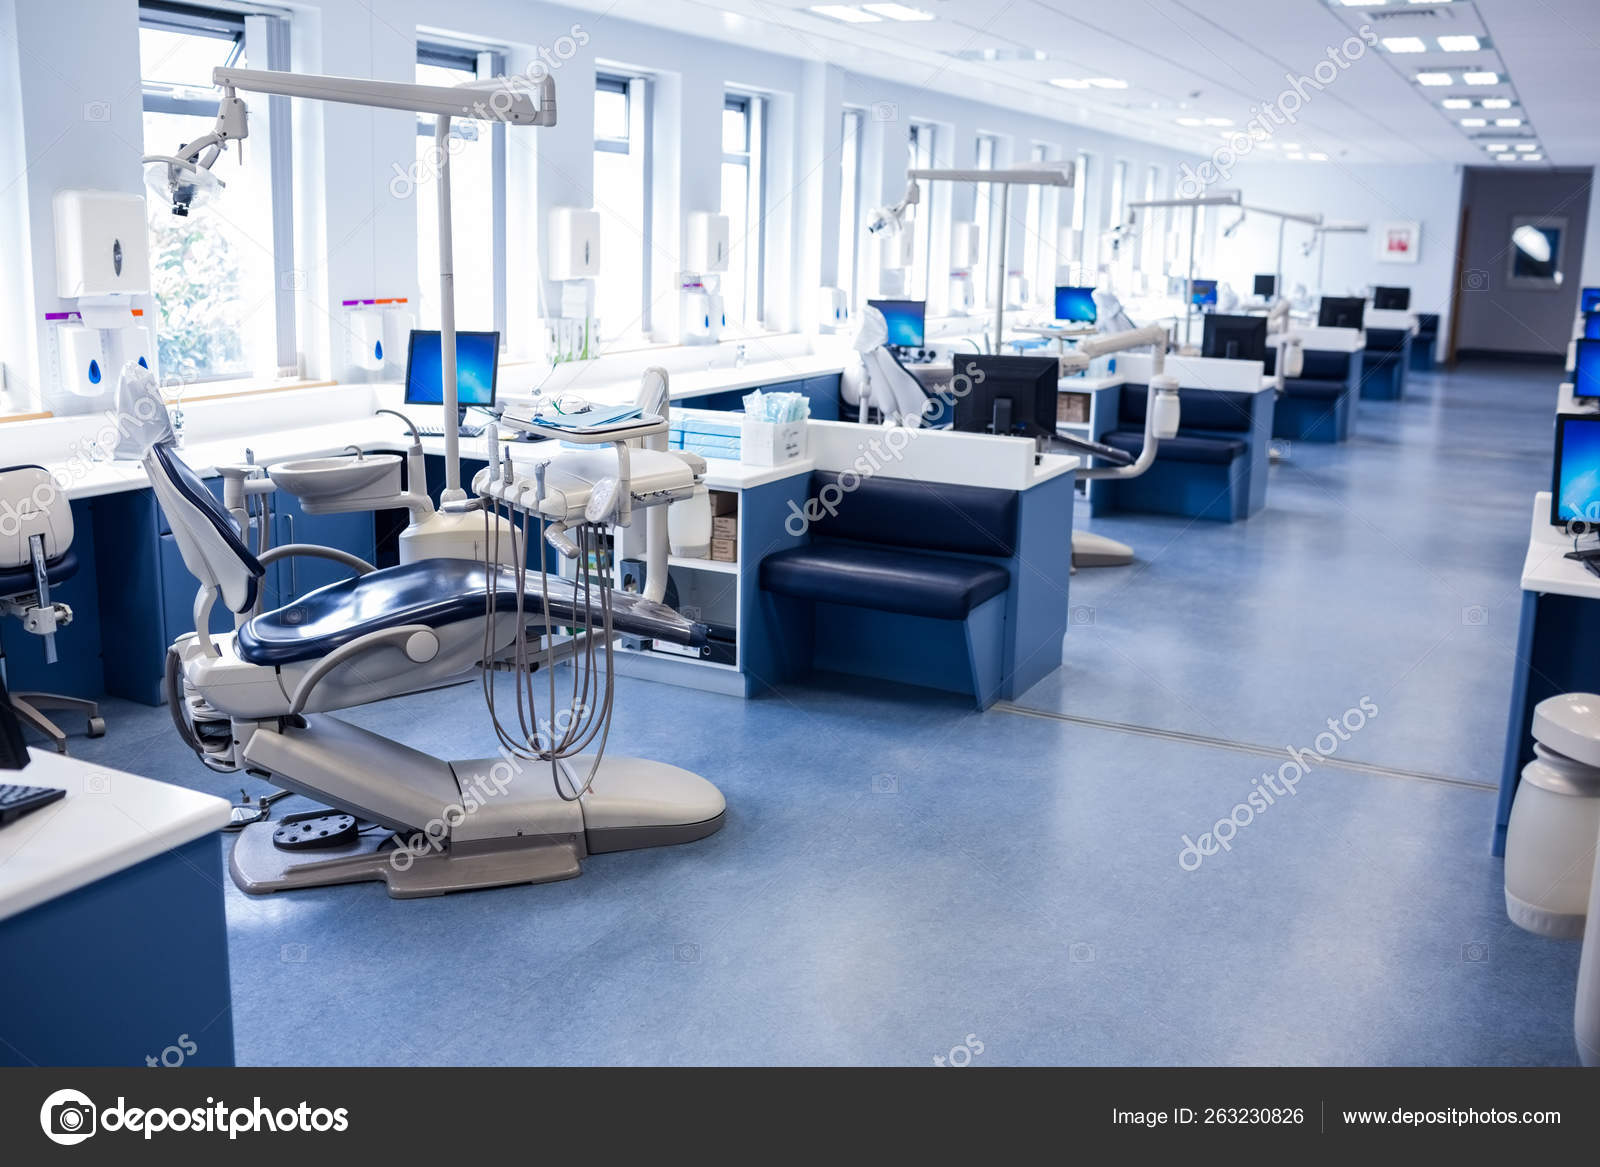 Clinic Dentists Chairs Dental Hospital Stock Photo C Yayimages 263230826